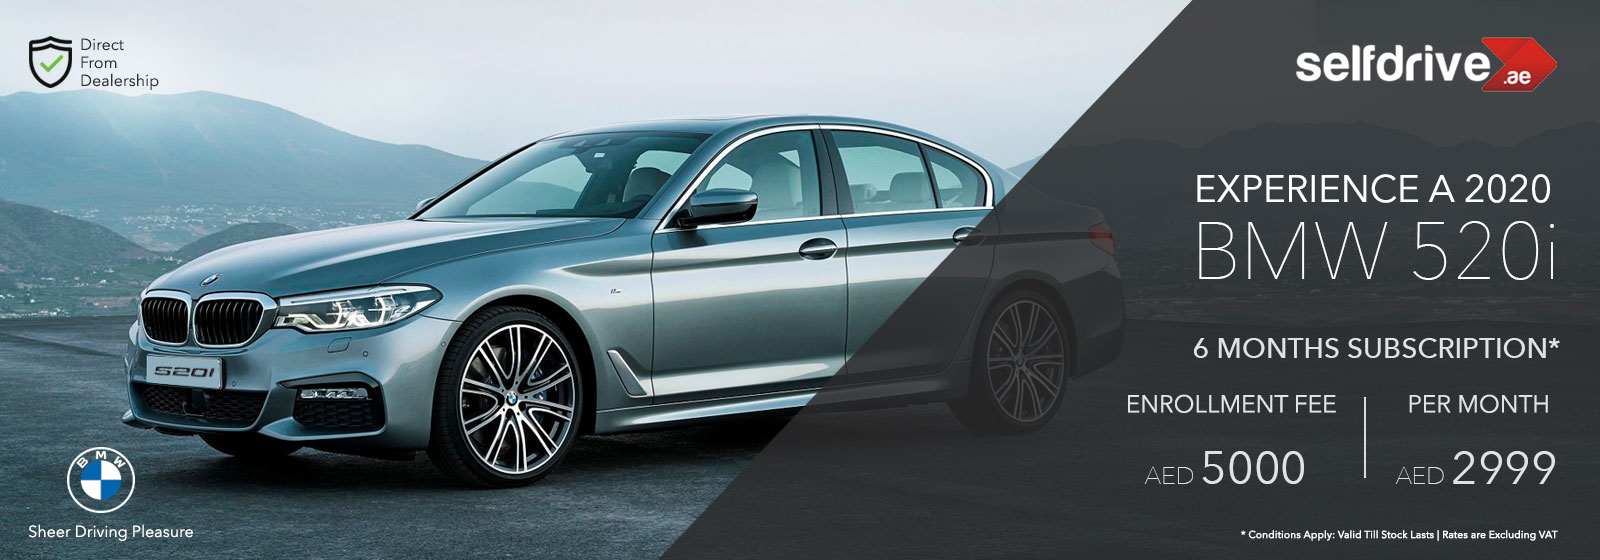 BMW 520i Subscription Offers